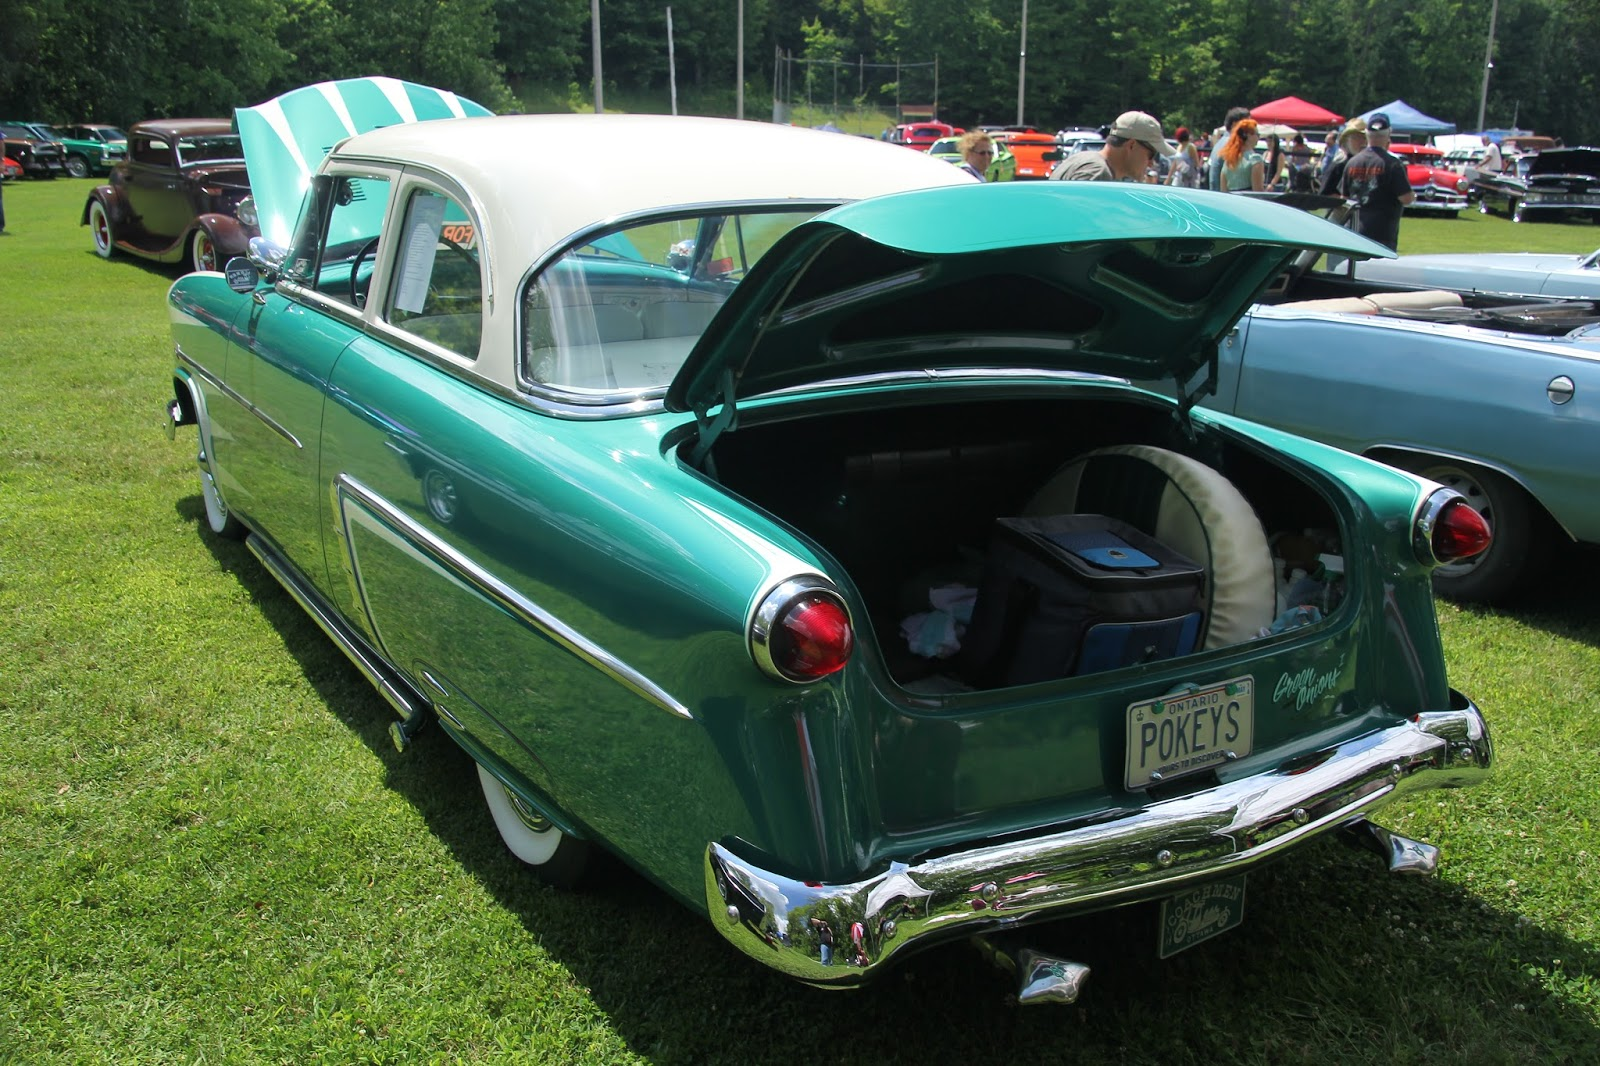 Ford customline 1952 photo - 8